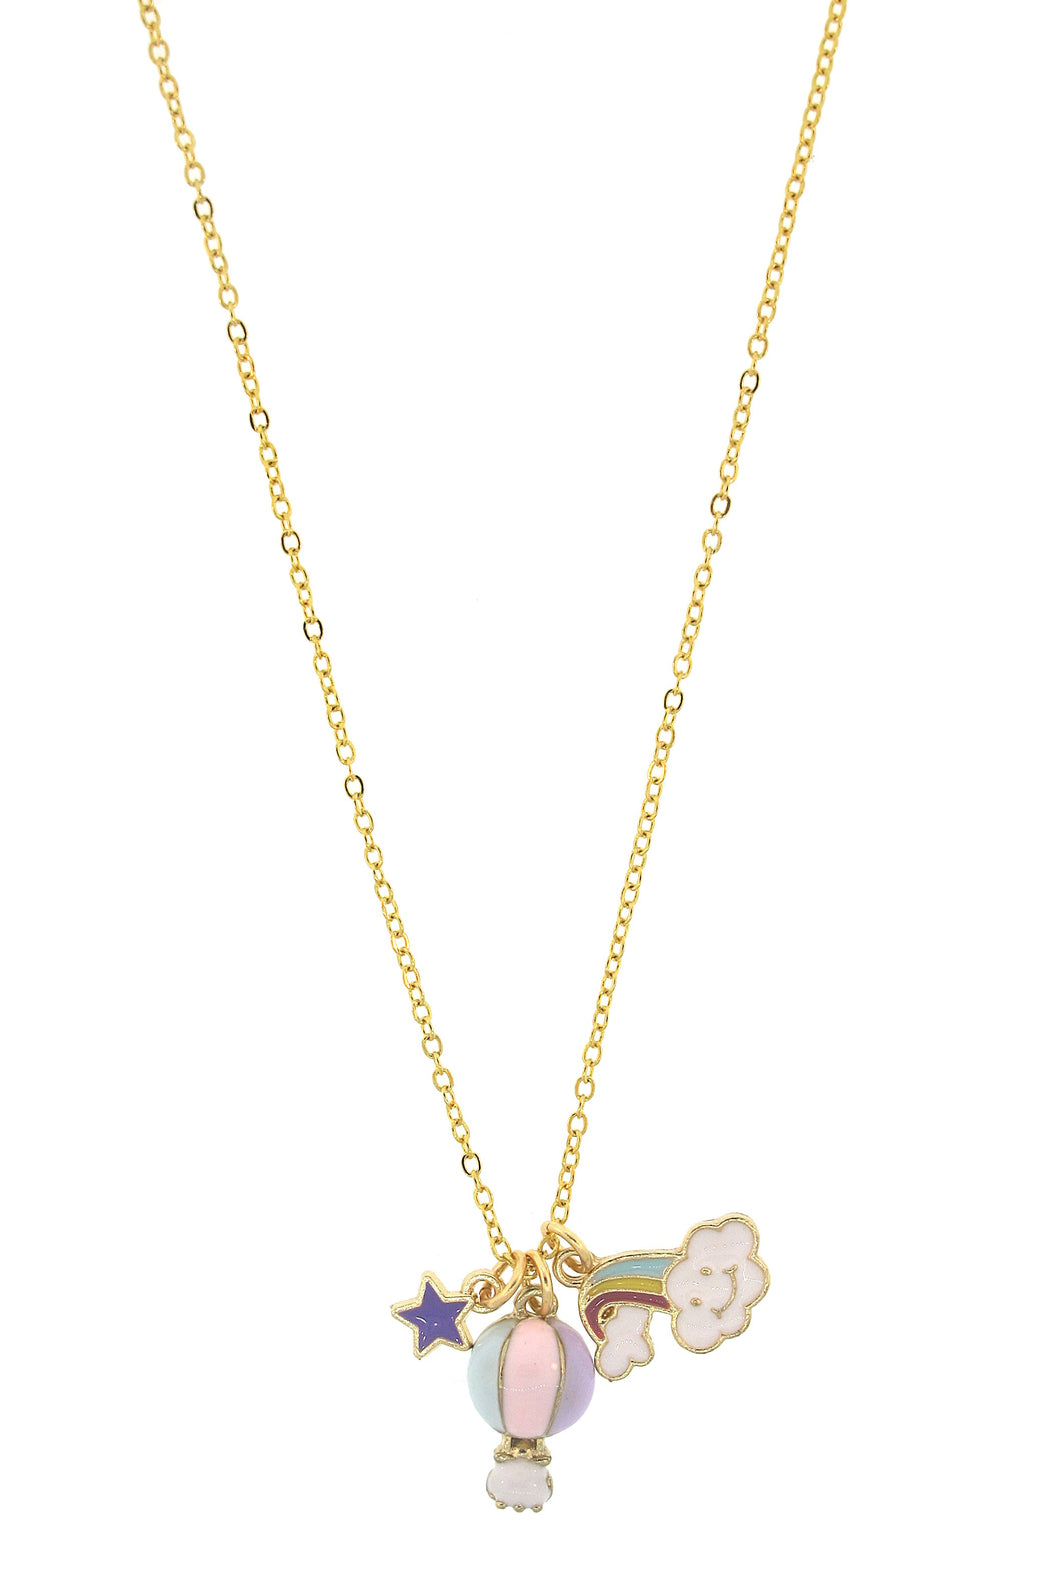 Hot Air Balloon Fun in the Sun Necklace